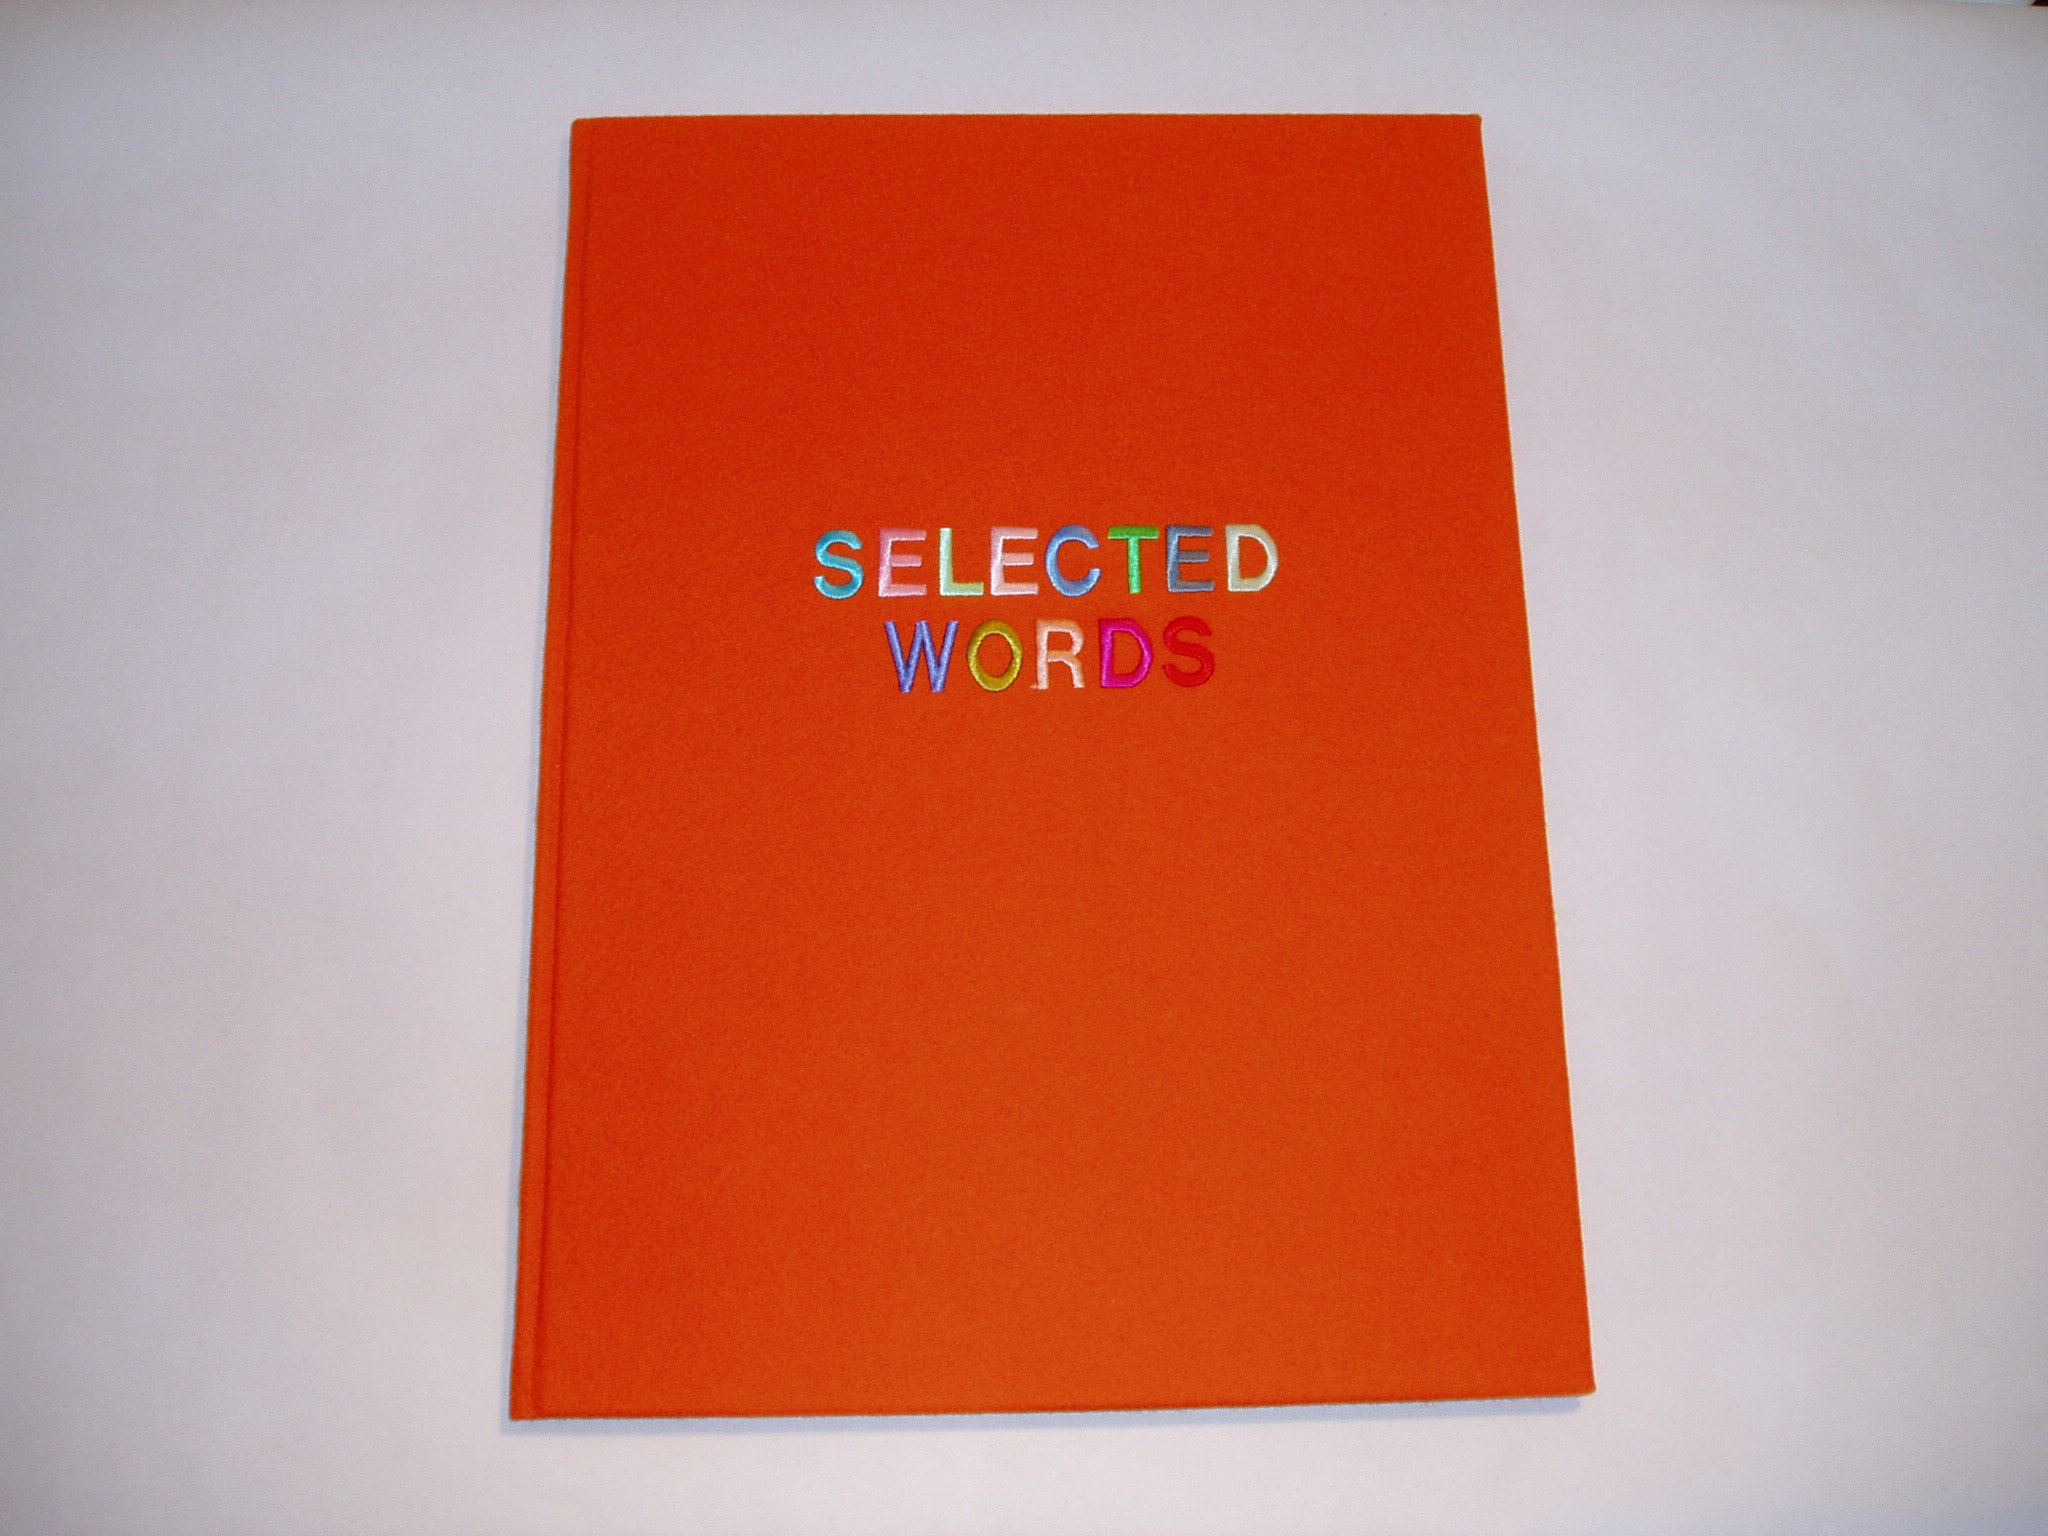 10. Selected Words orange cover.jpg